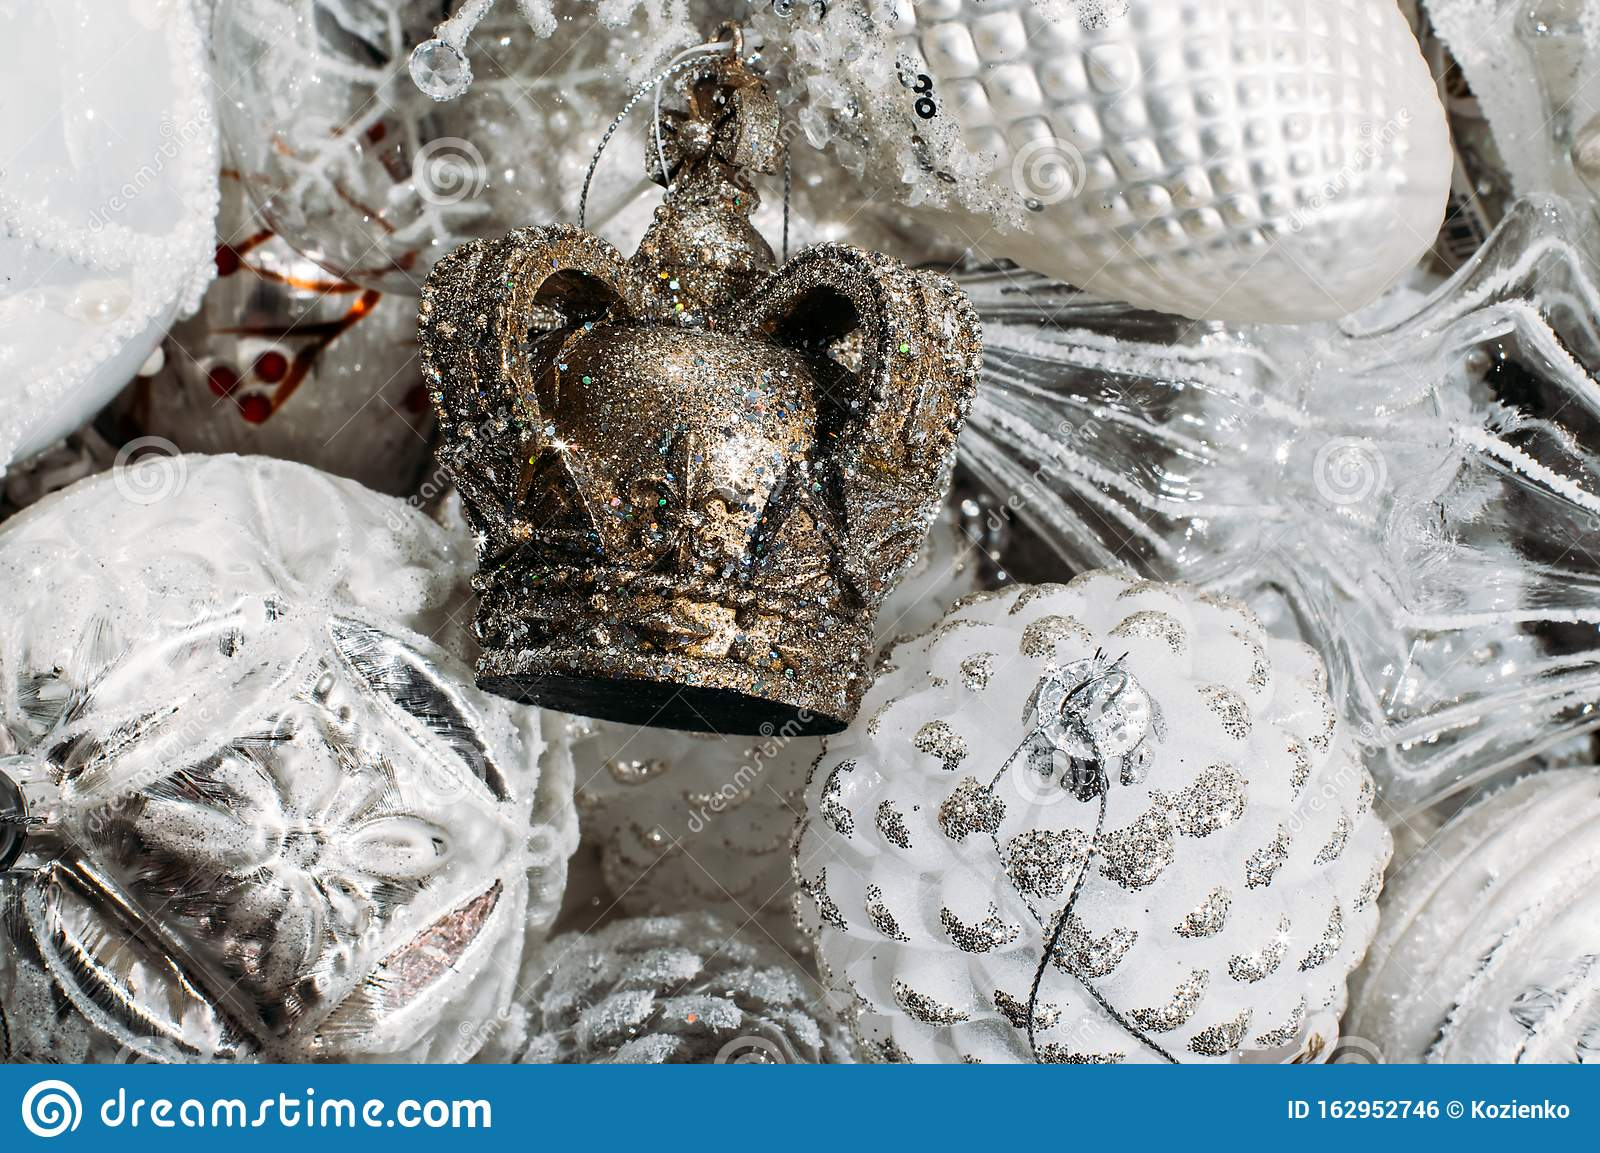 Crown Christmas Tree Decorations All In One Color White Background Stock Photo Image Of Merry Decoration 162952746